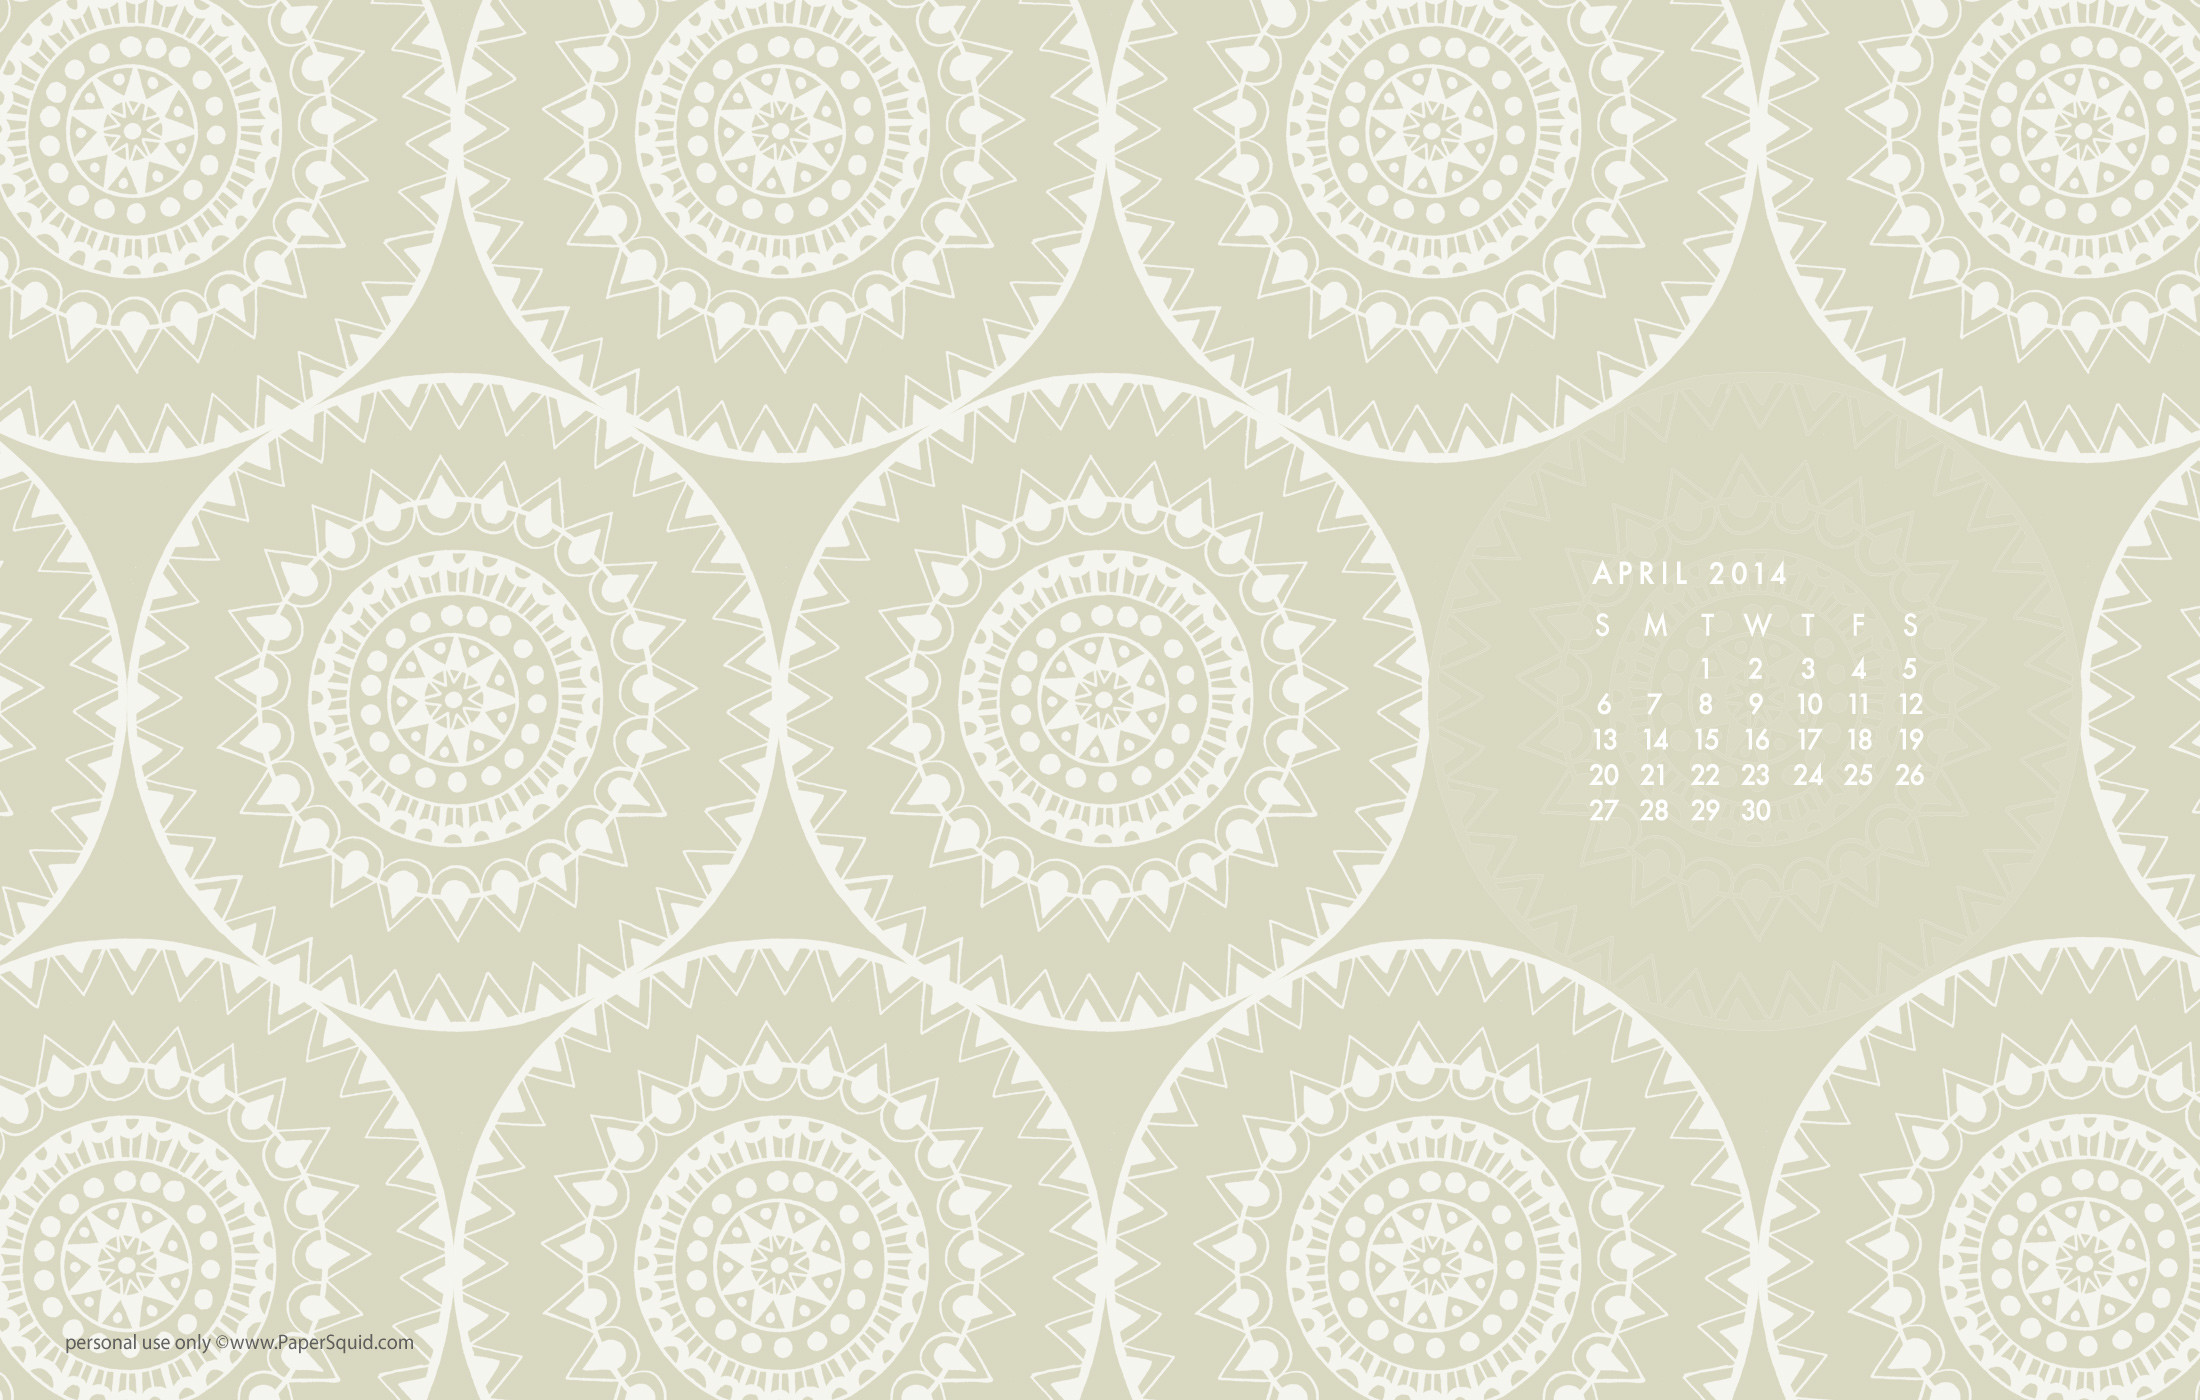 Res: 2200x1400, Download the mandala wallpaper, calendar version here